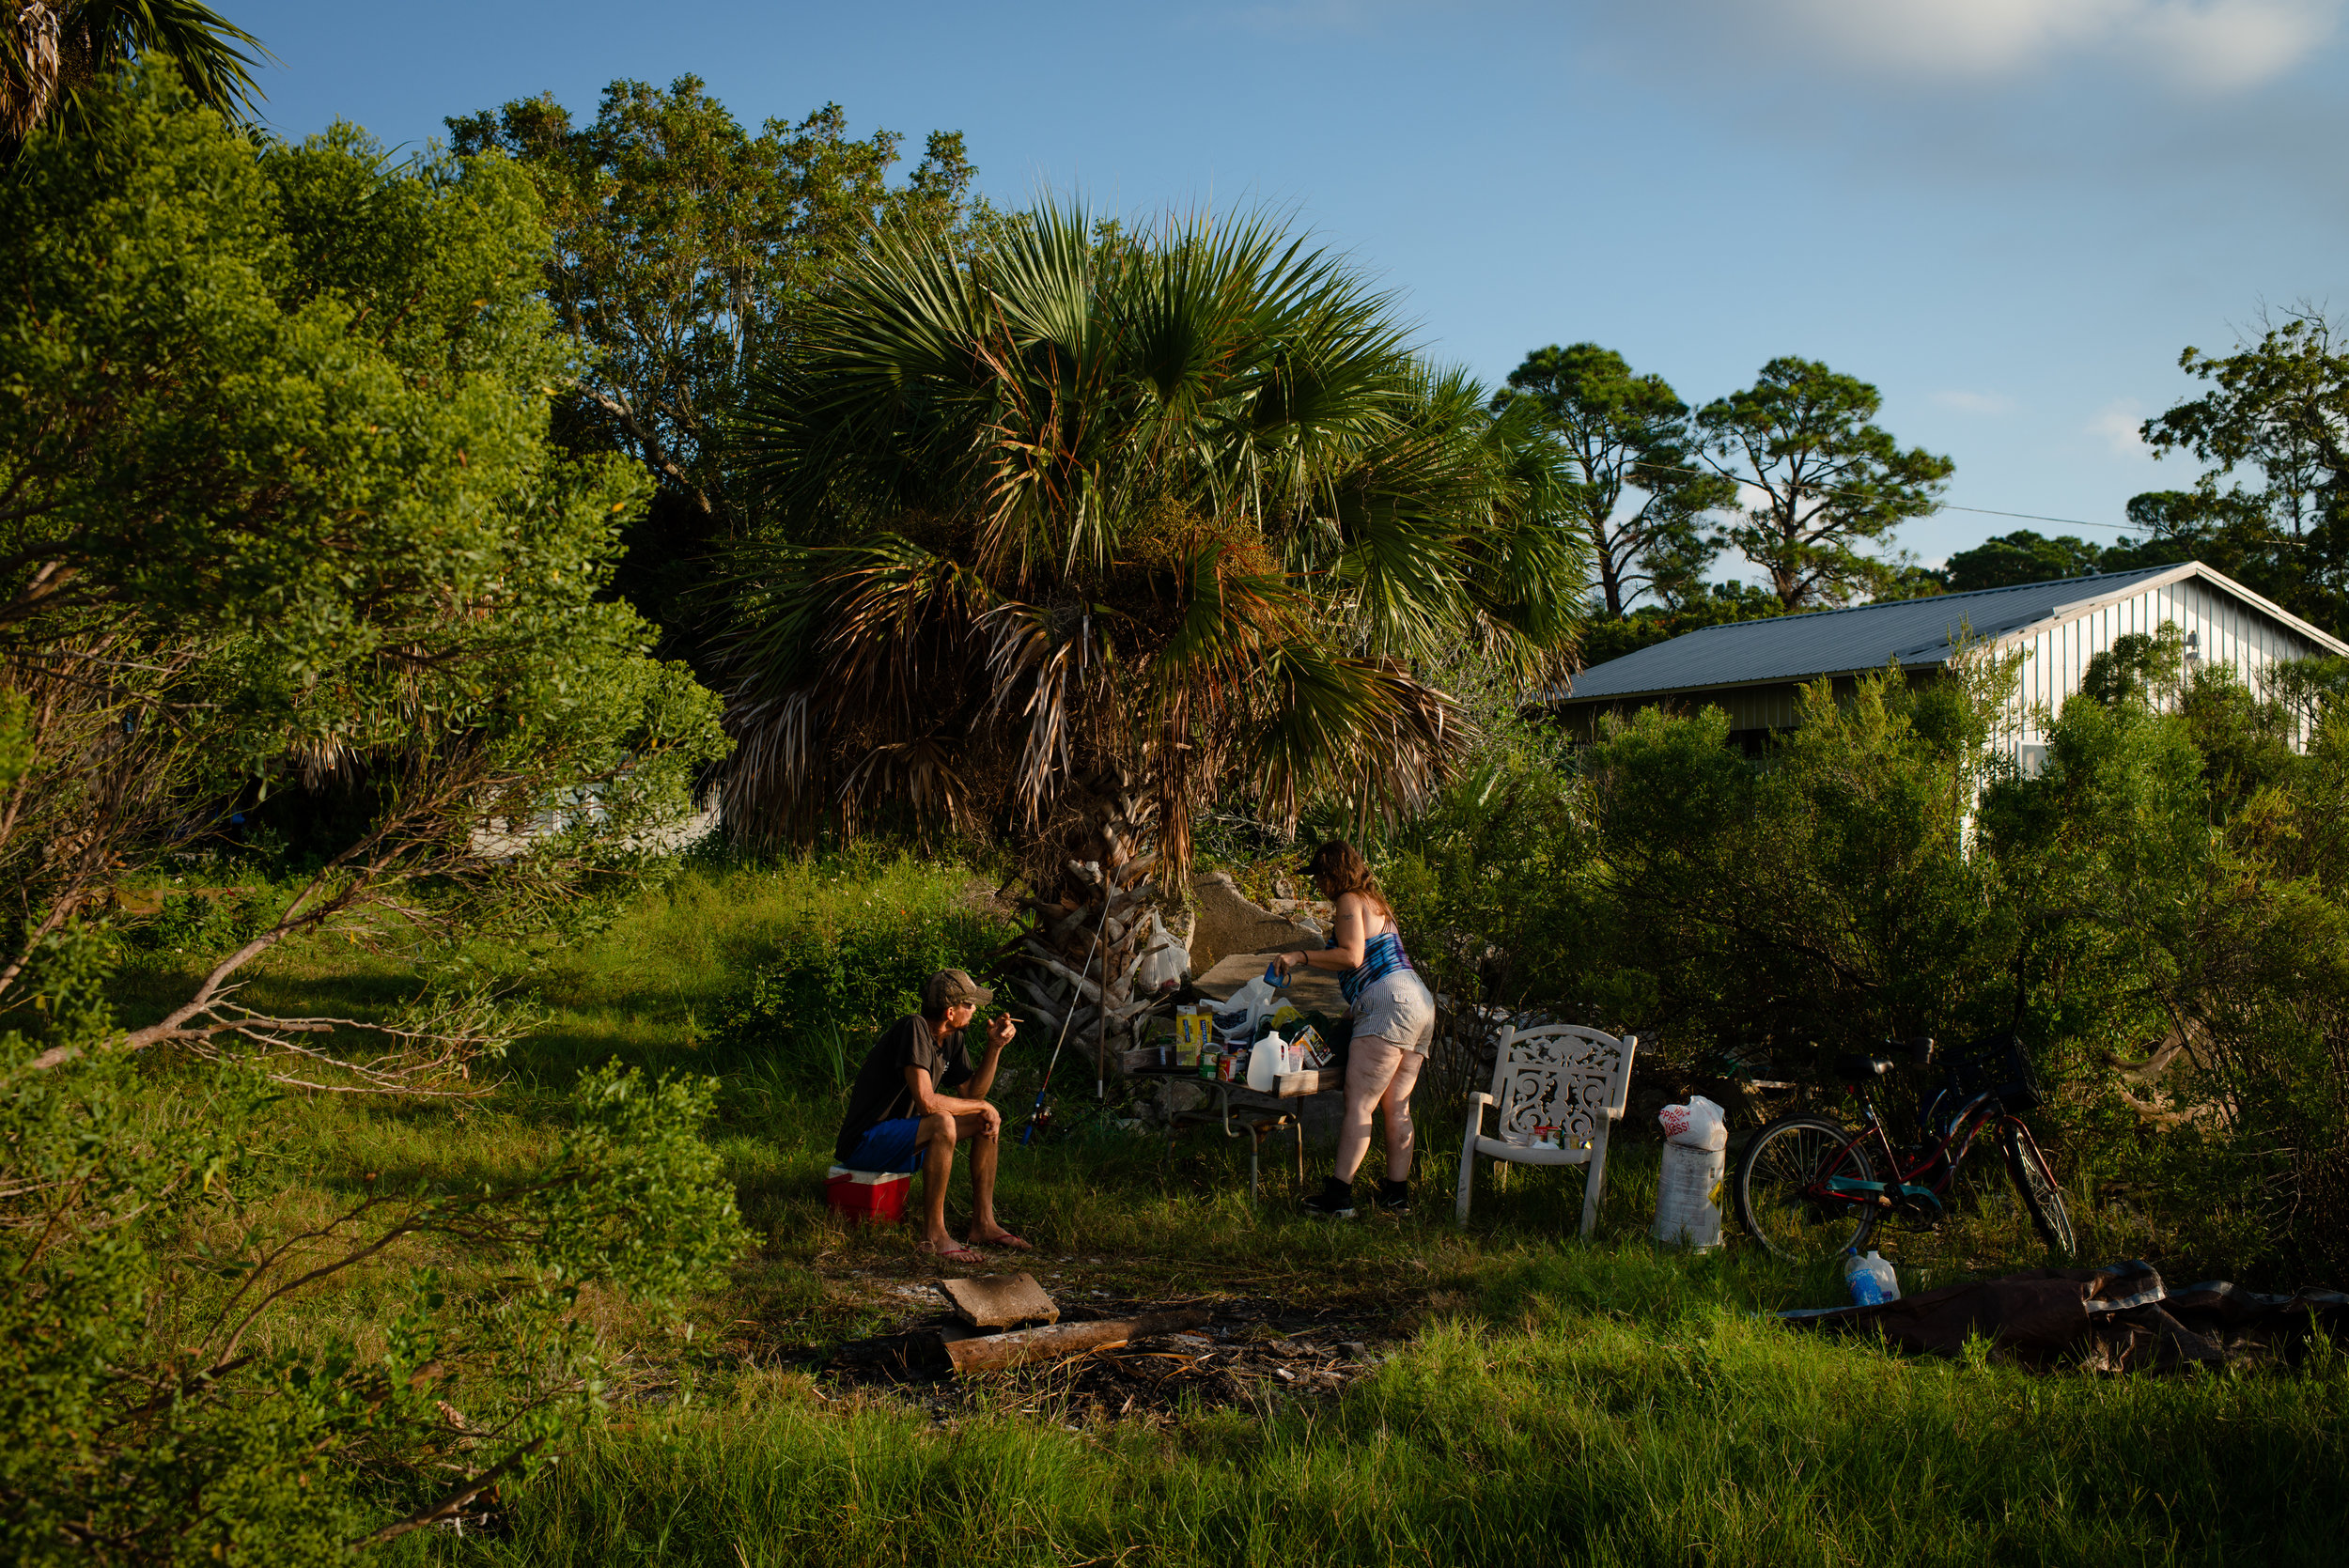 "Heather Petty, 42, and her boyfriend Fred Wilsey, 53, are sleeping on private land off the main road in Eastpoint. They have been homeless since 04 July, 2018. Fred has spent most his life, 38 years, living off the what the Apalachicola bay provides, Heather, who came to the area 10 years ago to care for her dying father joined Fred on the boat. Five years ago, because of smaller hauls, they quit harvesting oysters full-time and began cleaning rental properties on nearby Saint George Island, a popular tourist destination. When they began cleaning homes they would make combined $1500 a week, now $500 if they are lucky enough to find work. ""People come here because of oysters,"" said Fred. ""Now that there is a depletion of oysters, fewer people are coming here."" With little work and loss of their savings, Fred and Heather now sleep on the docks and have returned to fishing, not always legally, to survive. ""The water is all we have left,"" Heather said. ""You have to be a felon to eat around here. That is what they are turning us it into."""